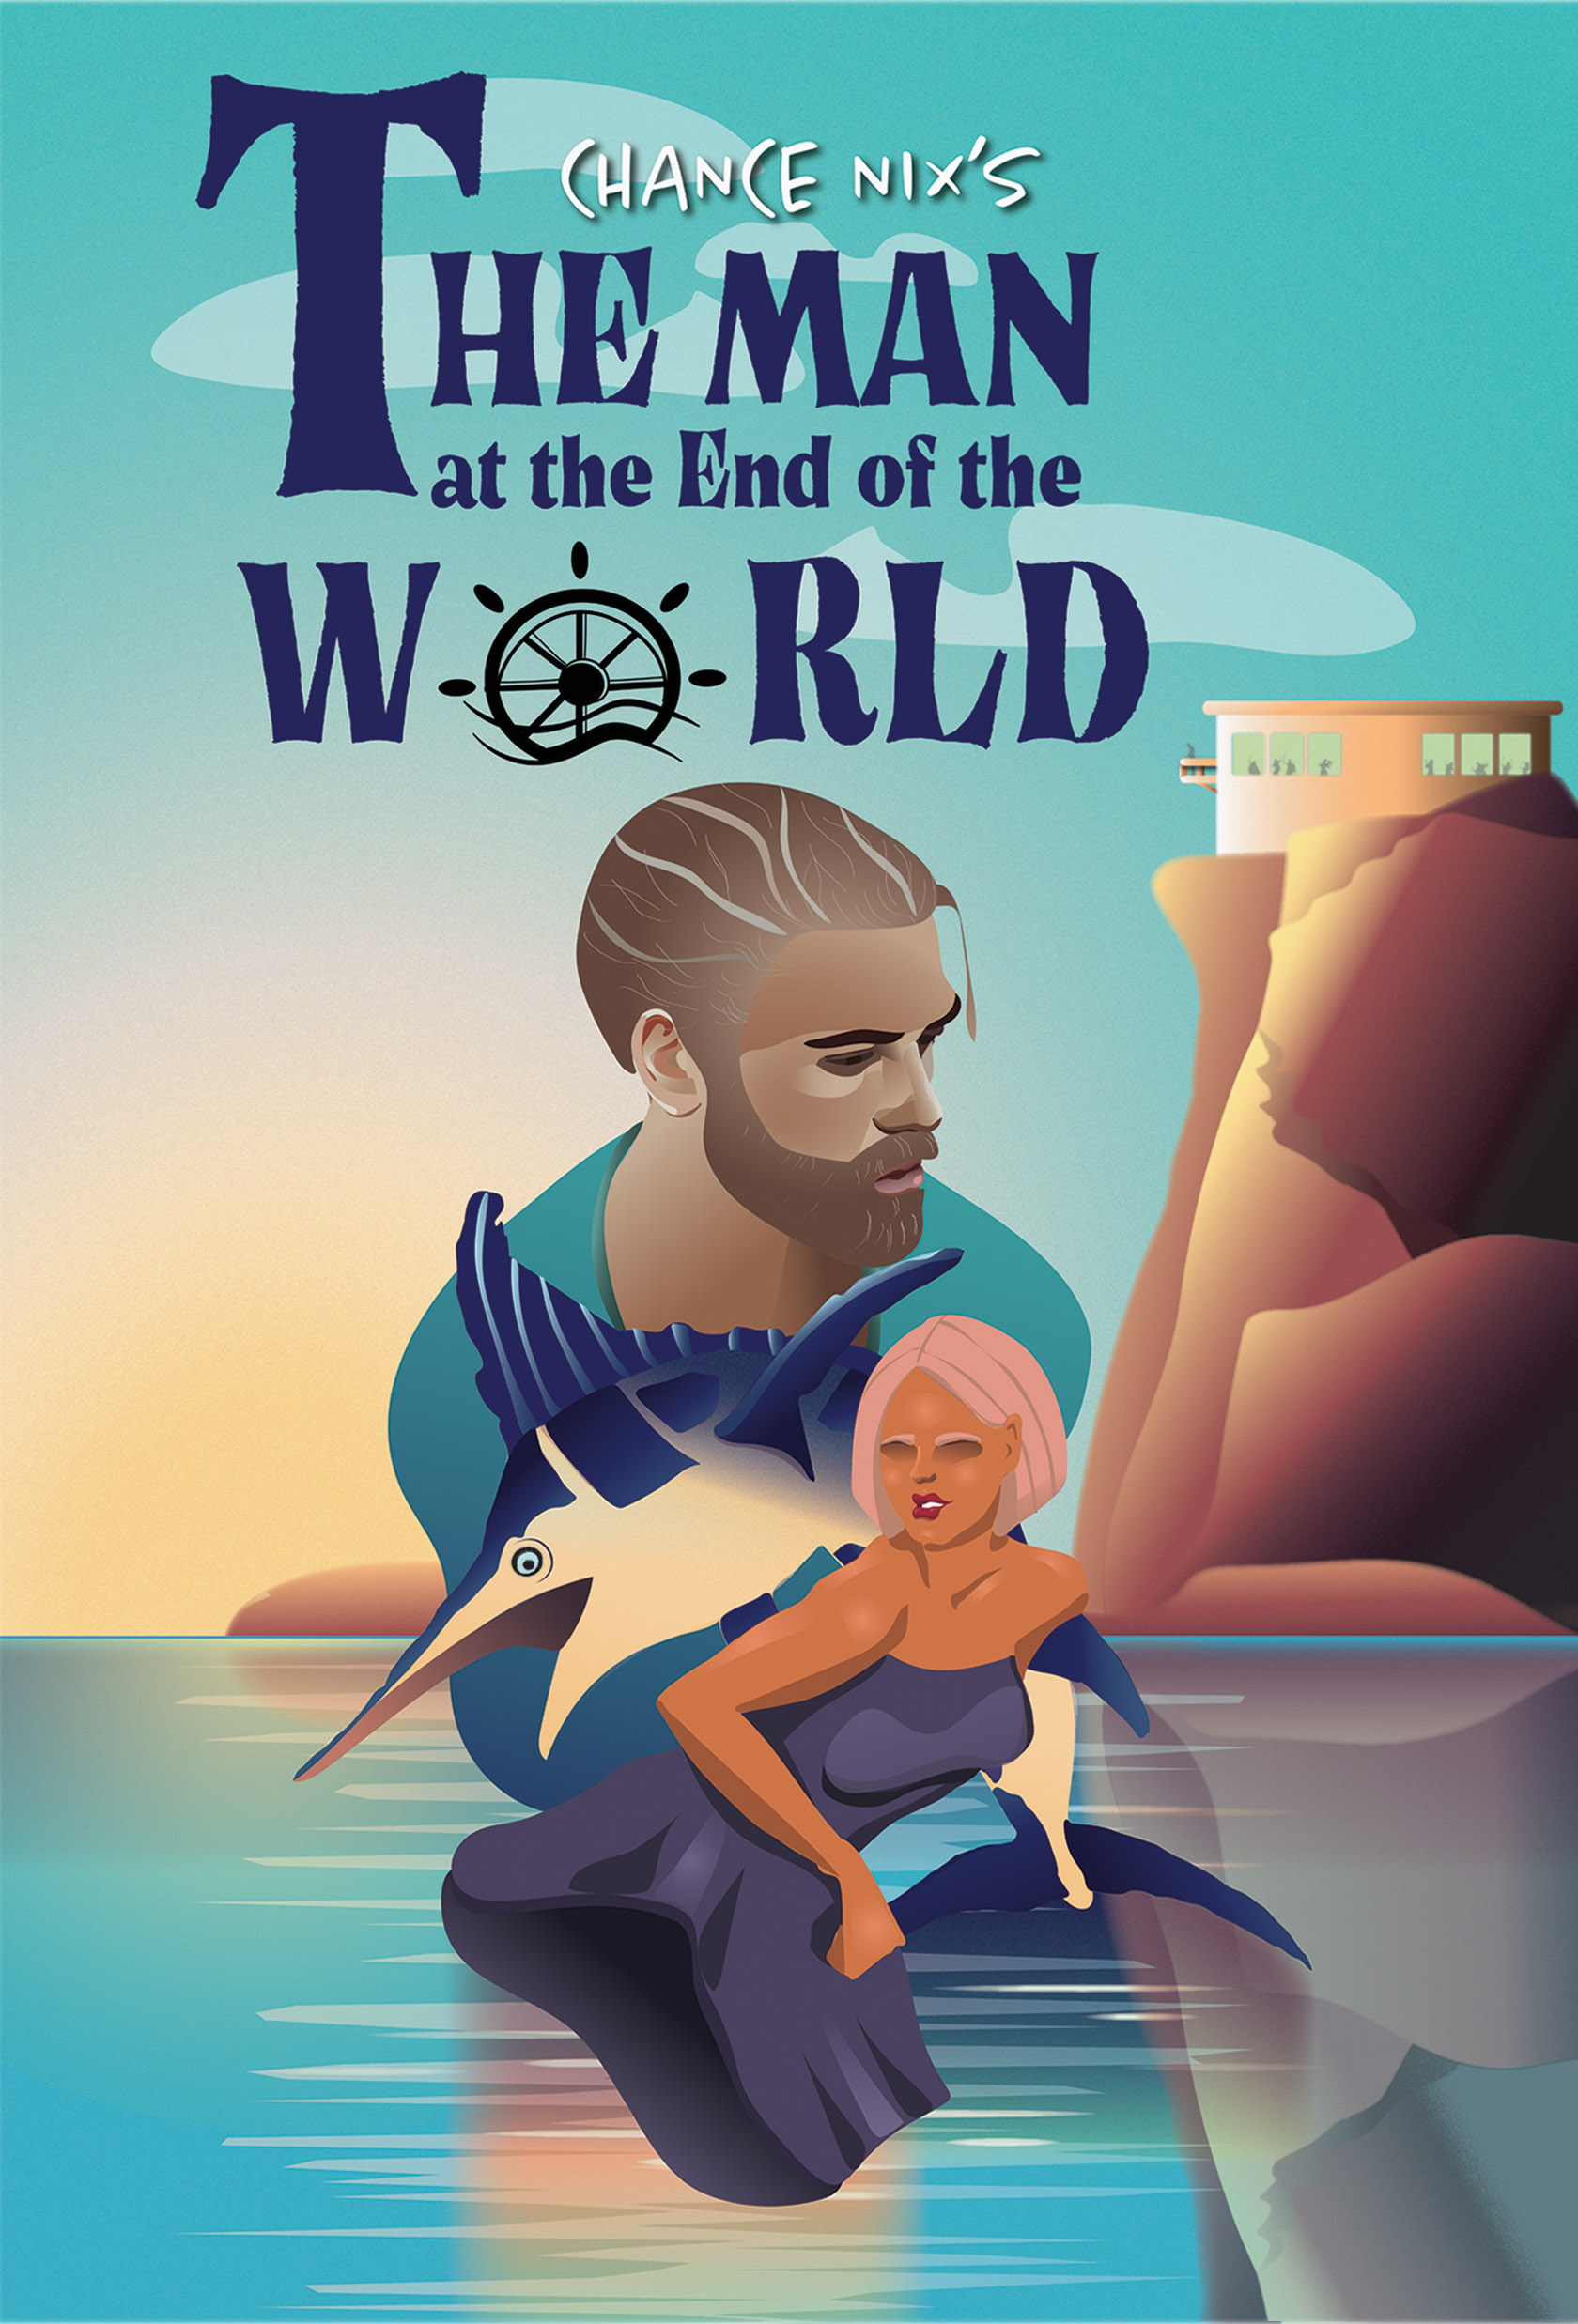 Chance Nix's The Man at the End of the World